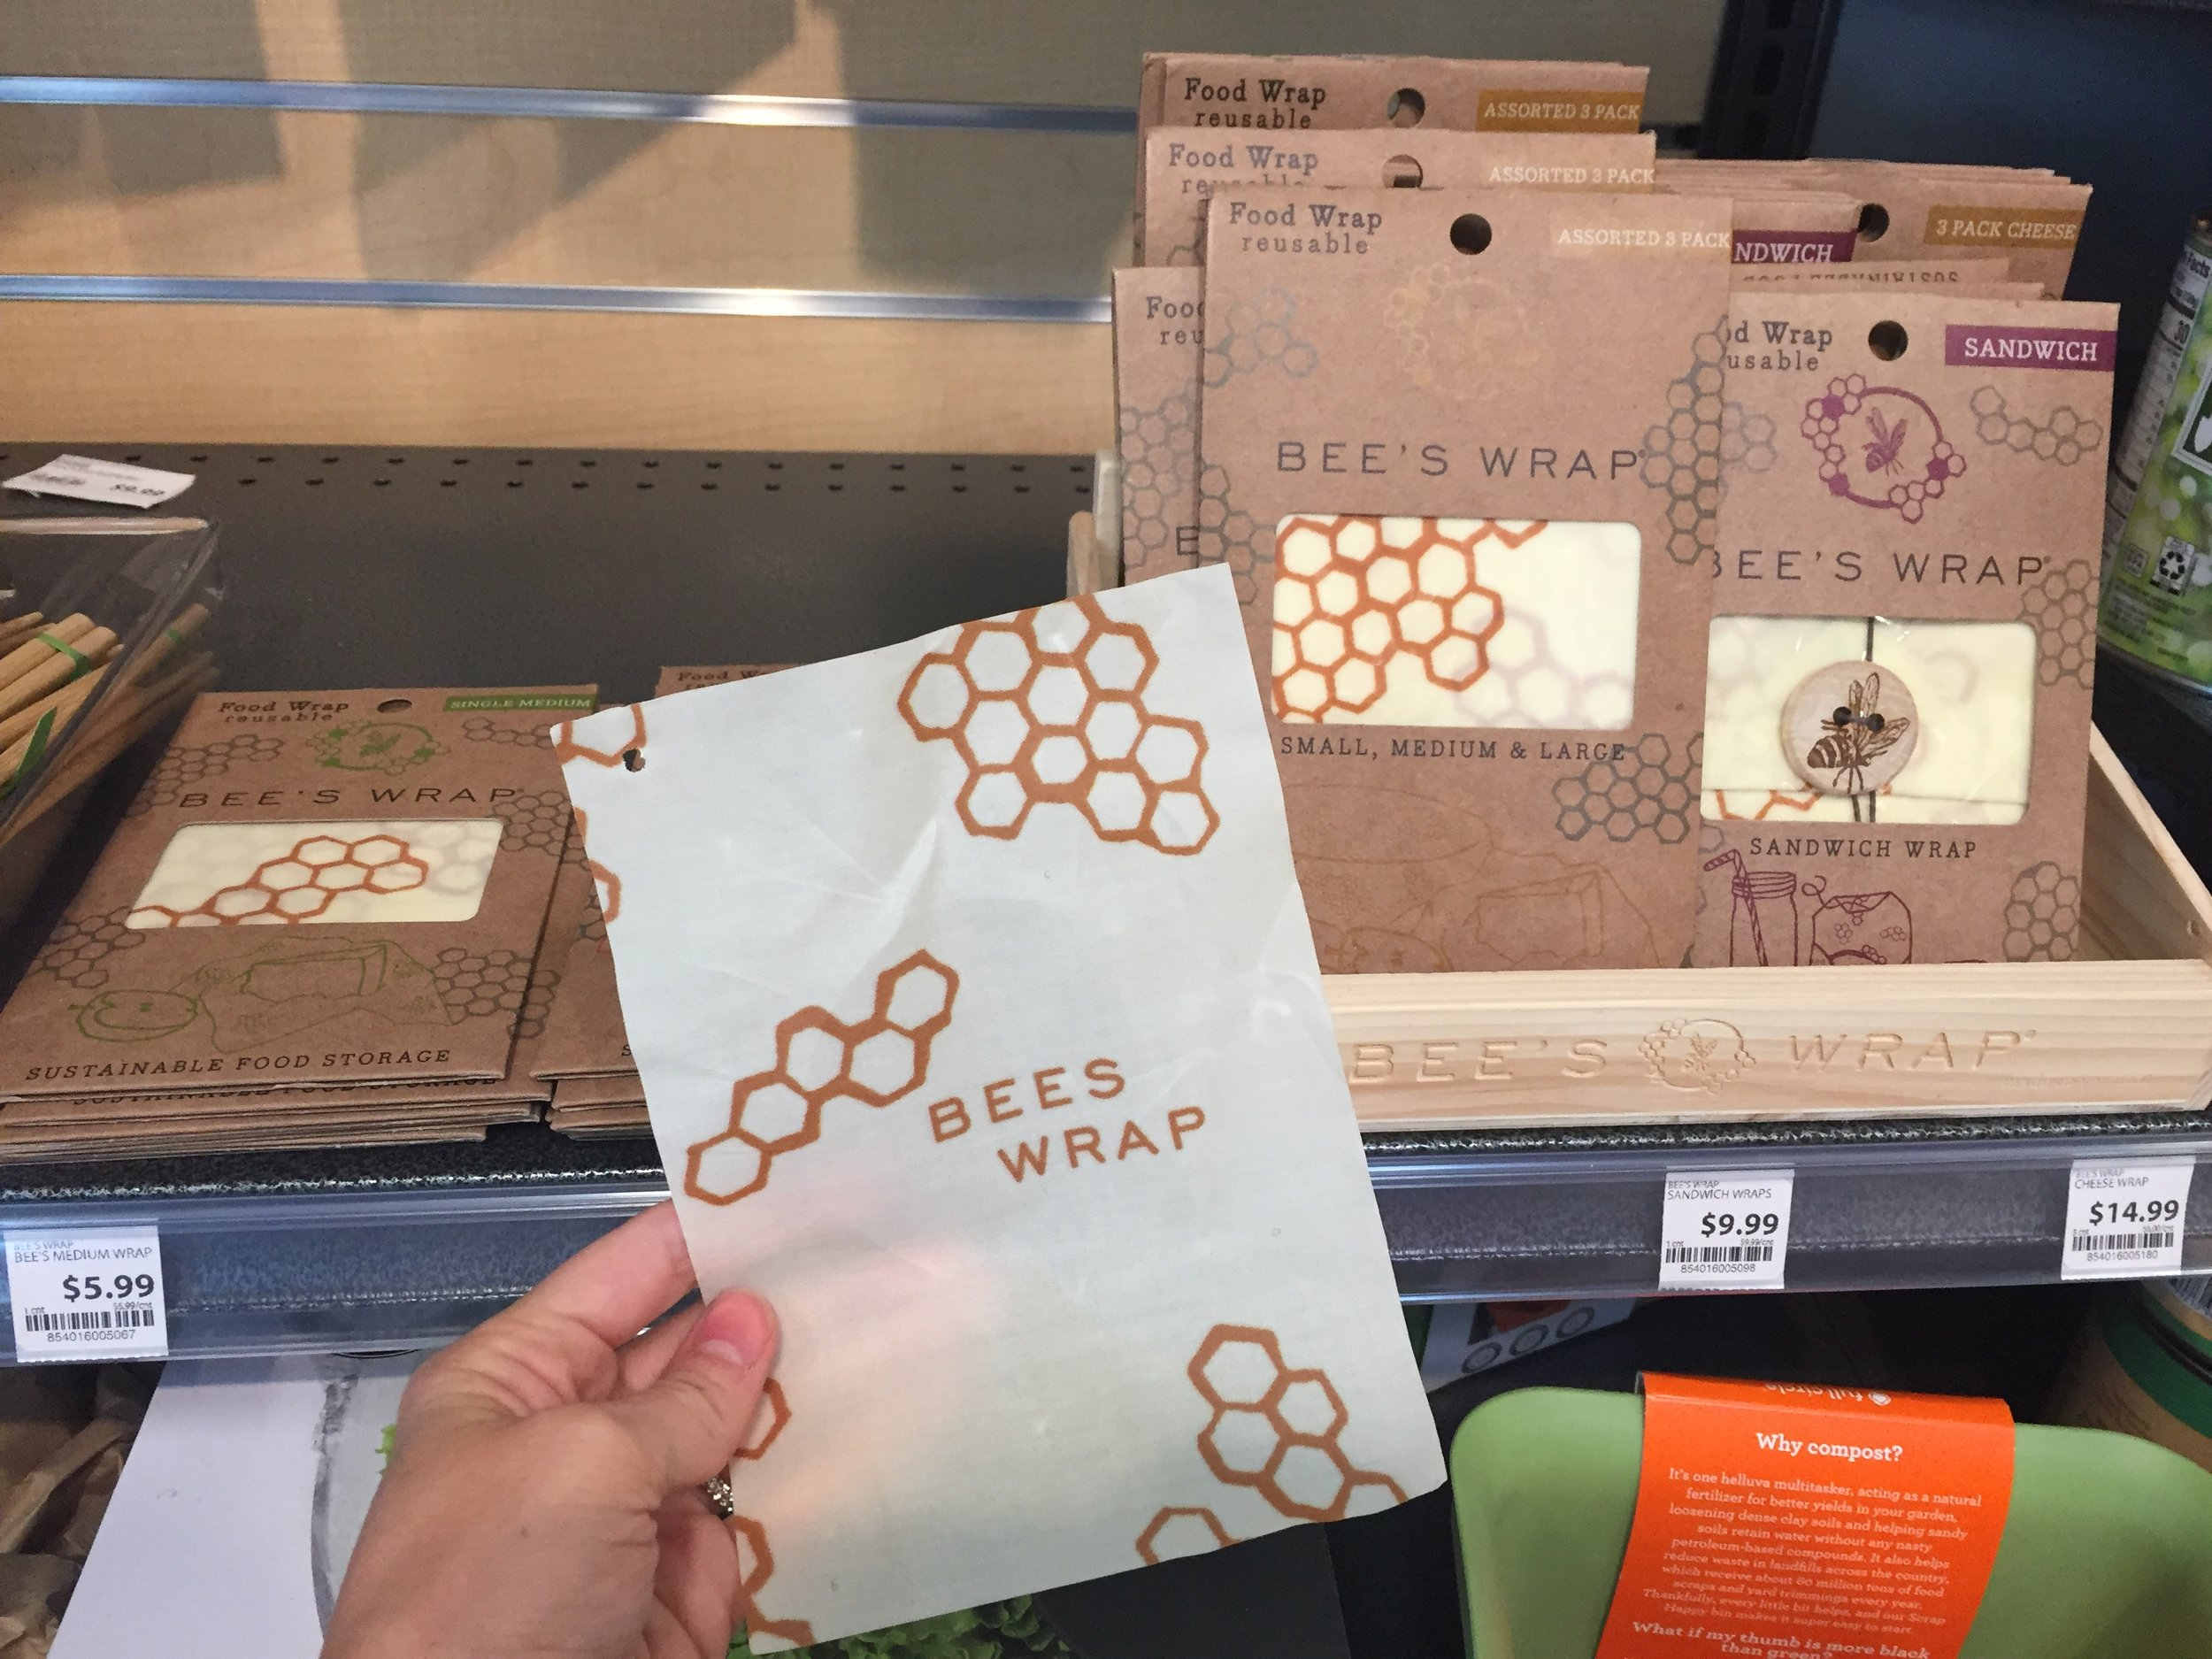 I'm noticing a theme throughout the store -- very bee-friendly. This plastic wrap alternative, Bee Wrap, made from bees wax, is nice.